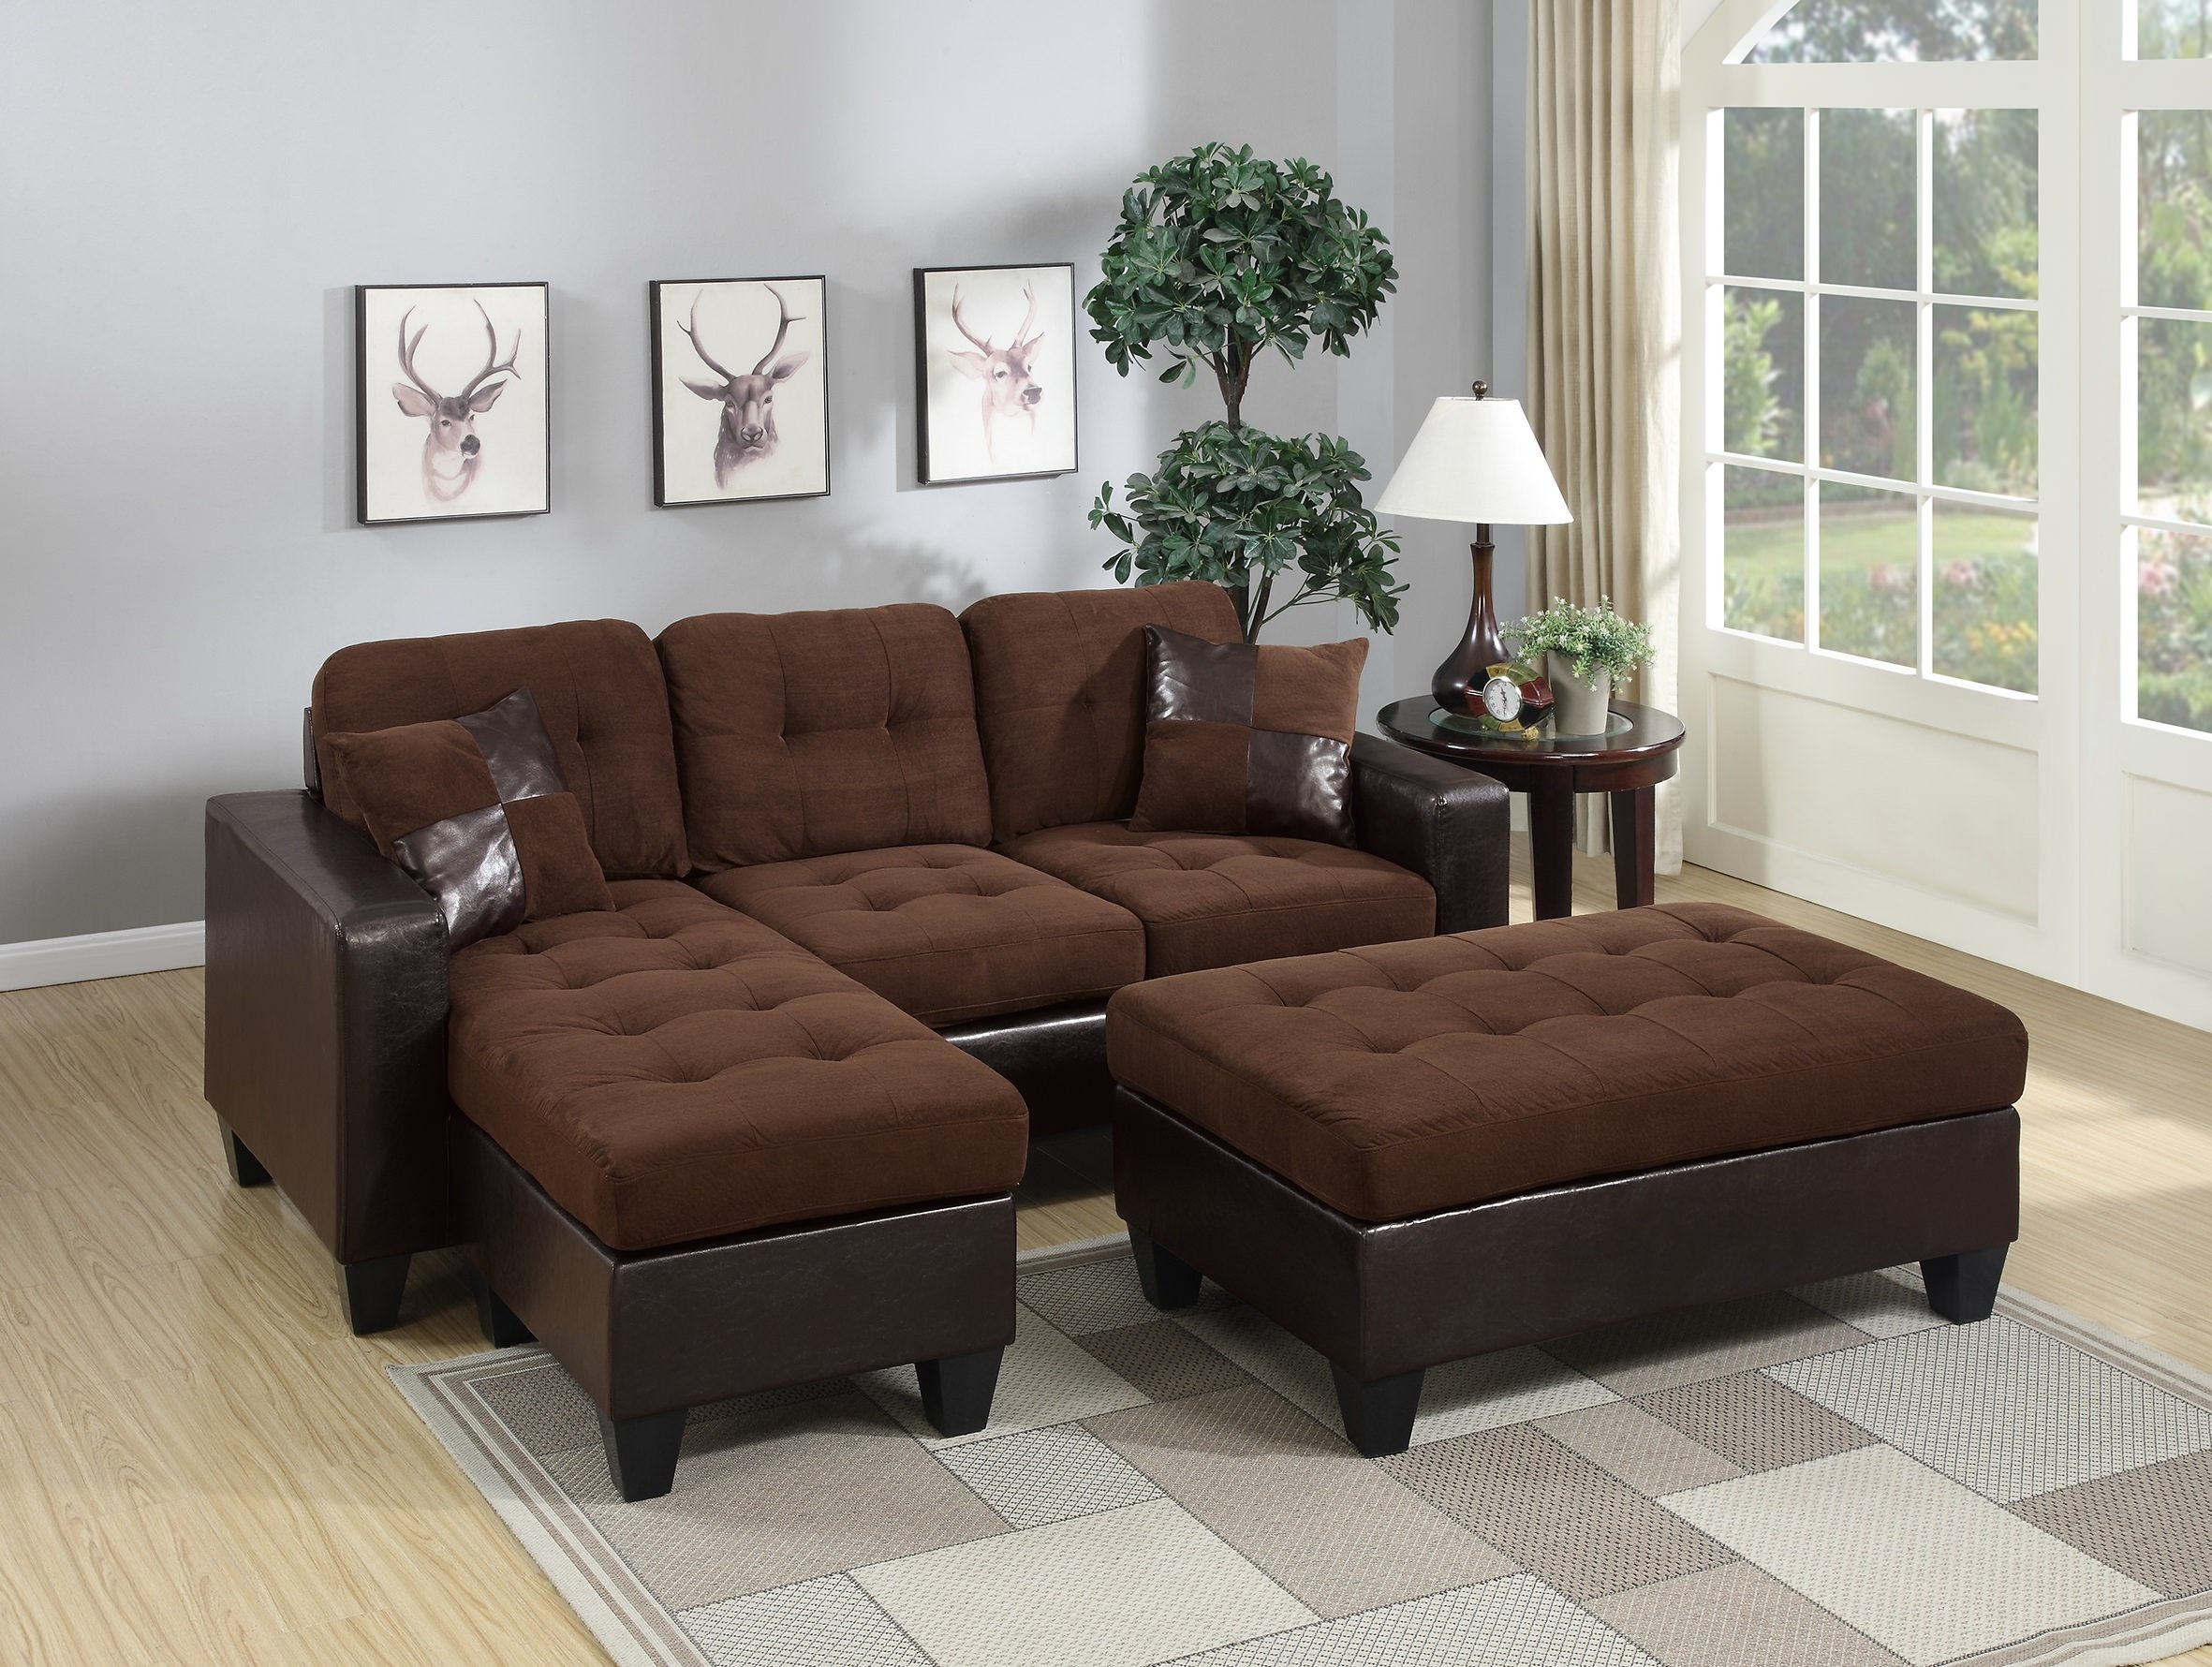 F6928 chocolate sectional sofa set by poundex for Affordable furniture 3 piece sectional in wyoming saddle